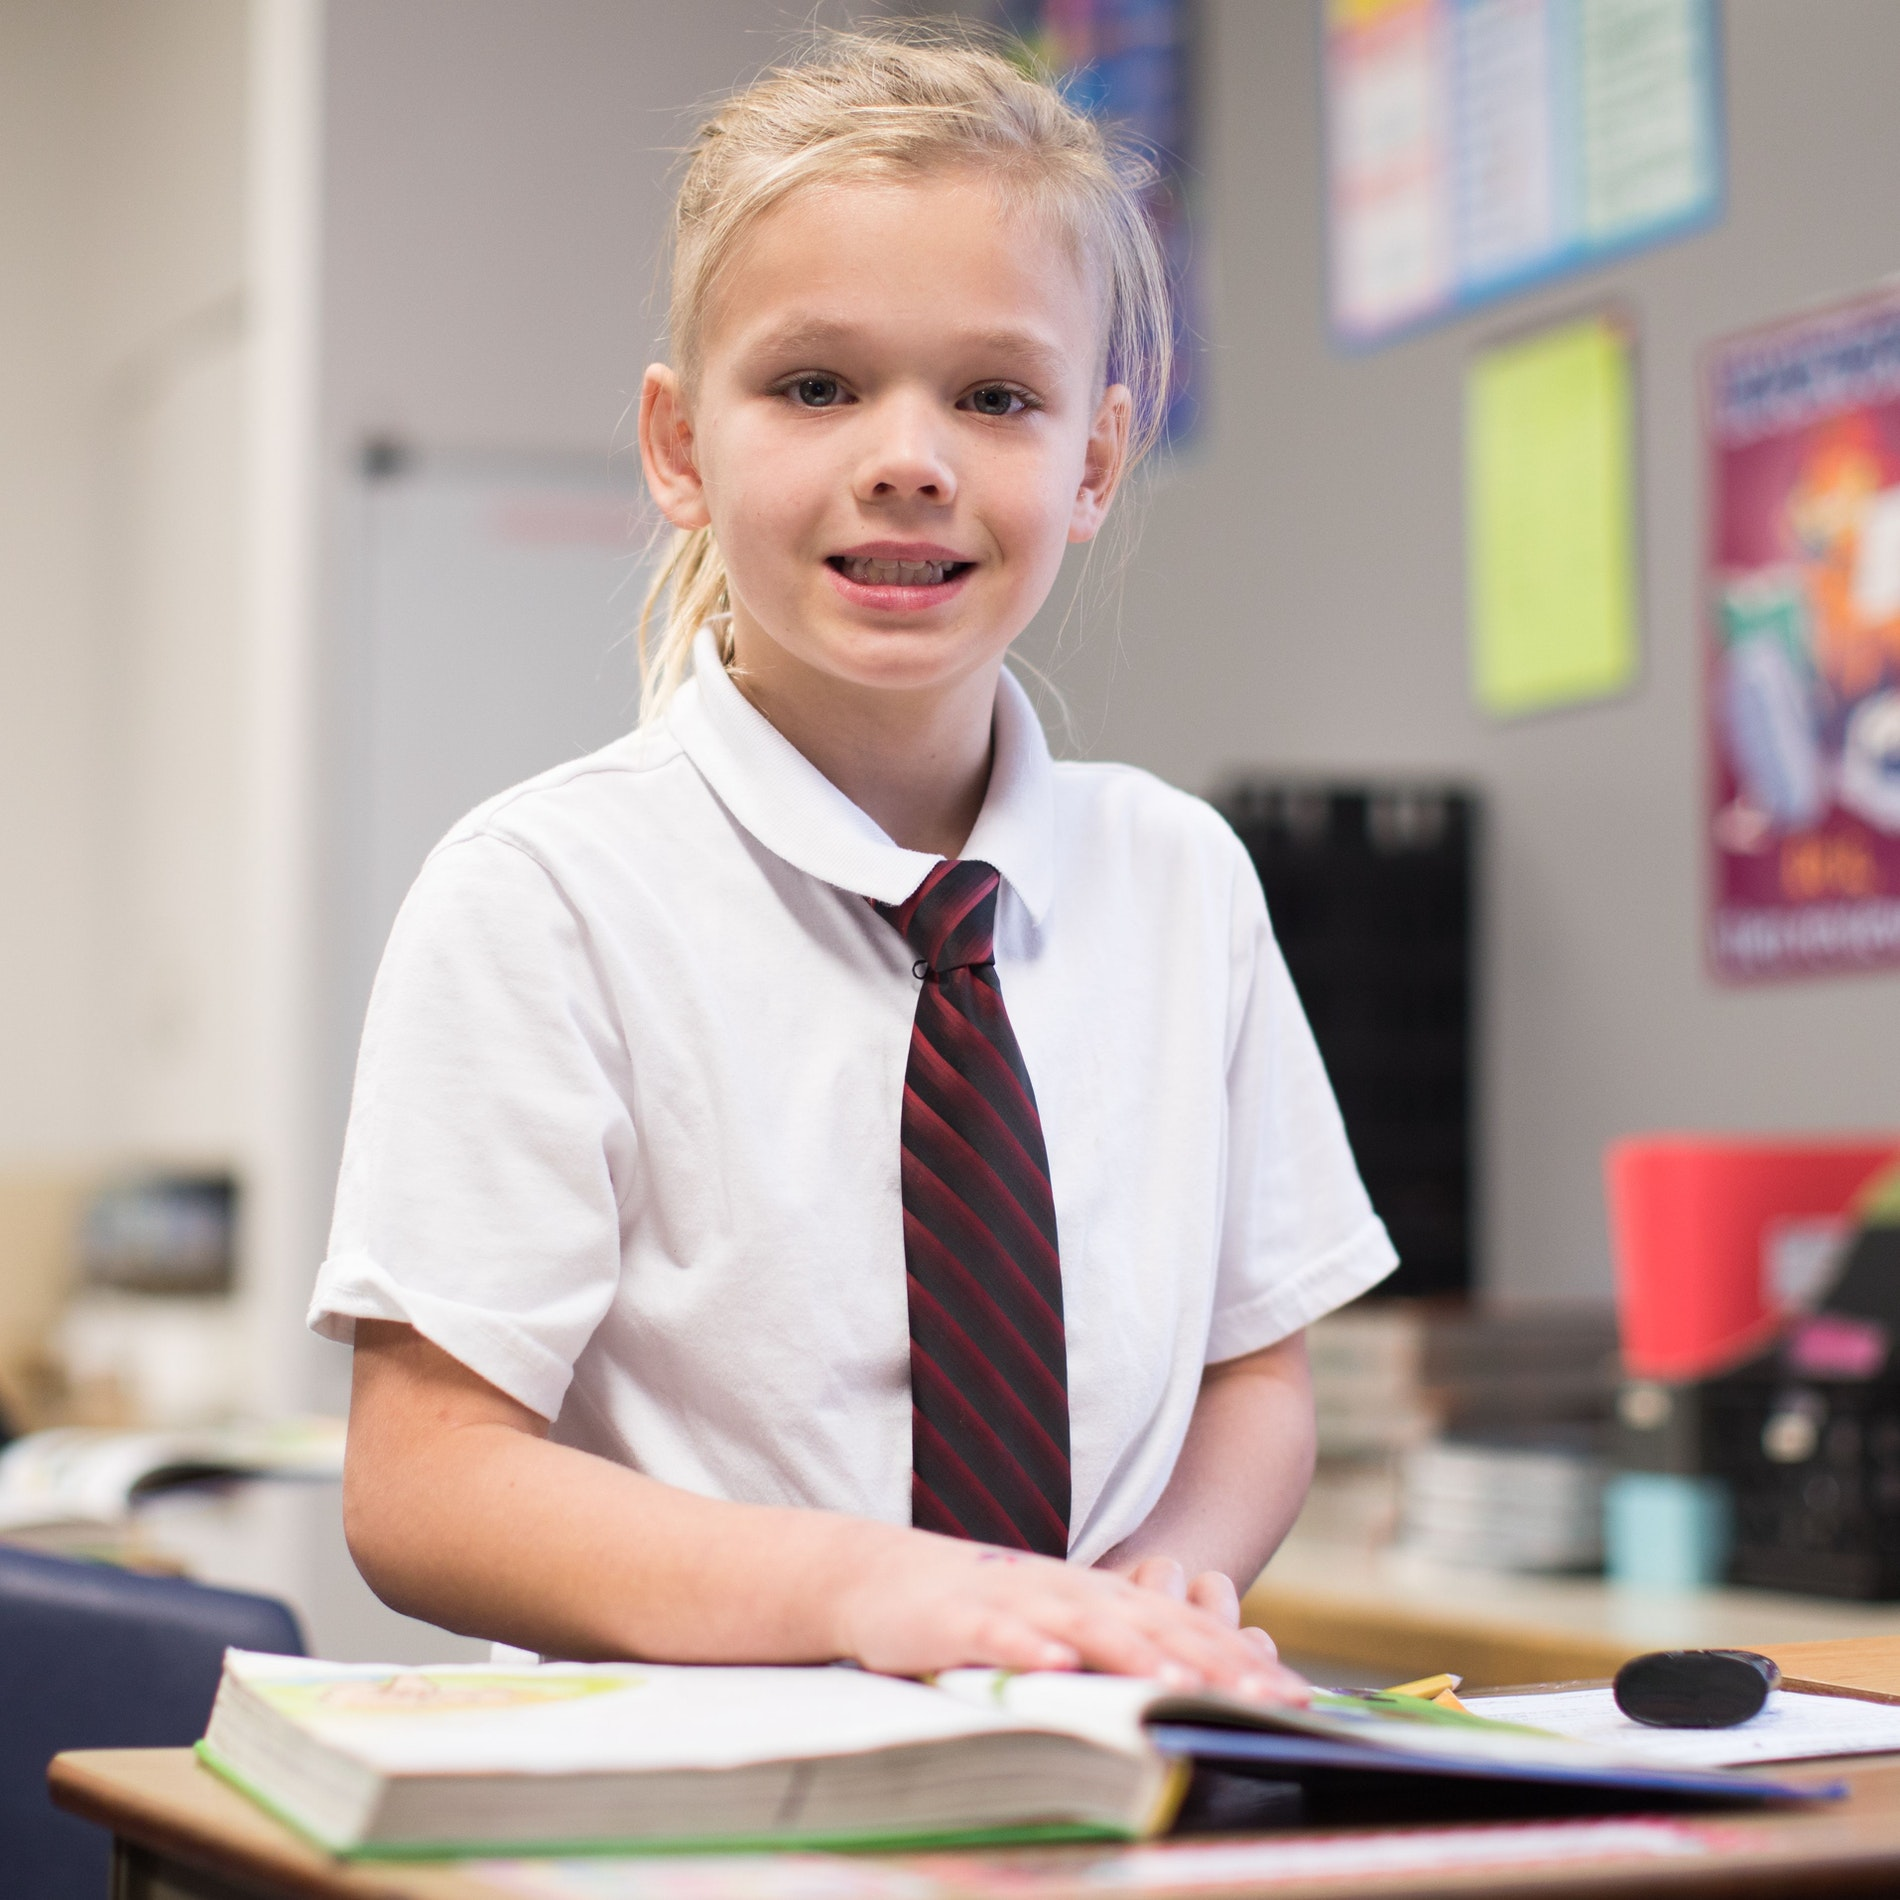 Girl smiling with textbook open on desk .